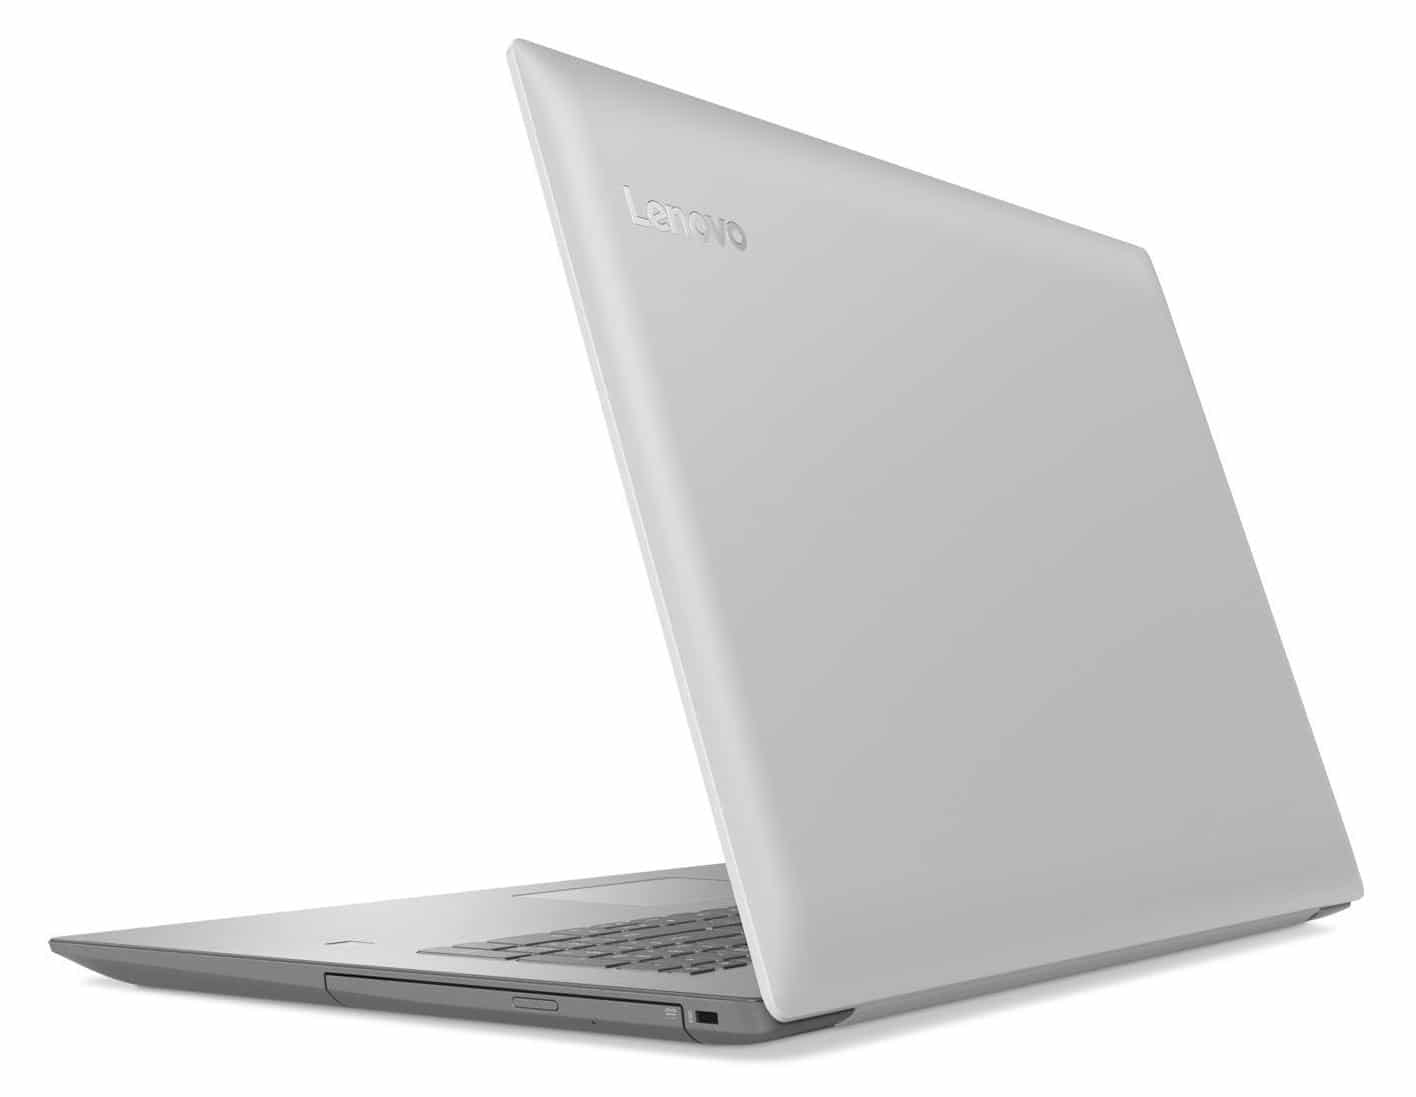 Lenovo Ideapad 320-17ISK, PC portable 17 pouces Core i3 920MX à 479€